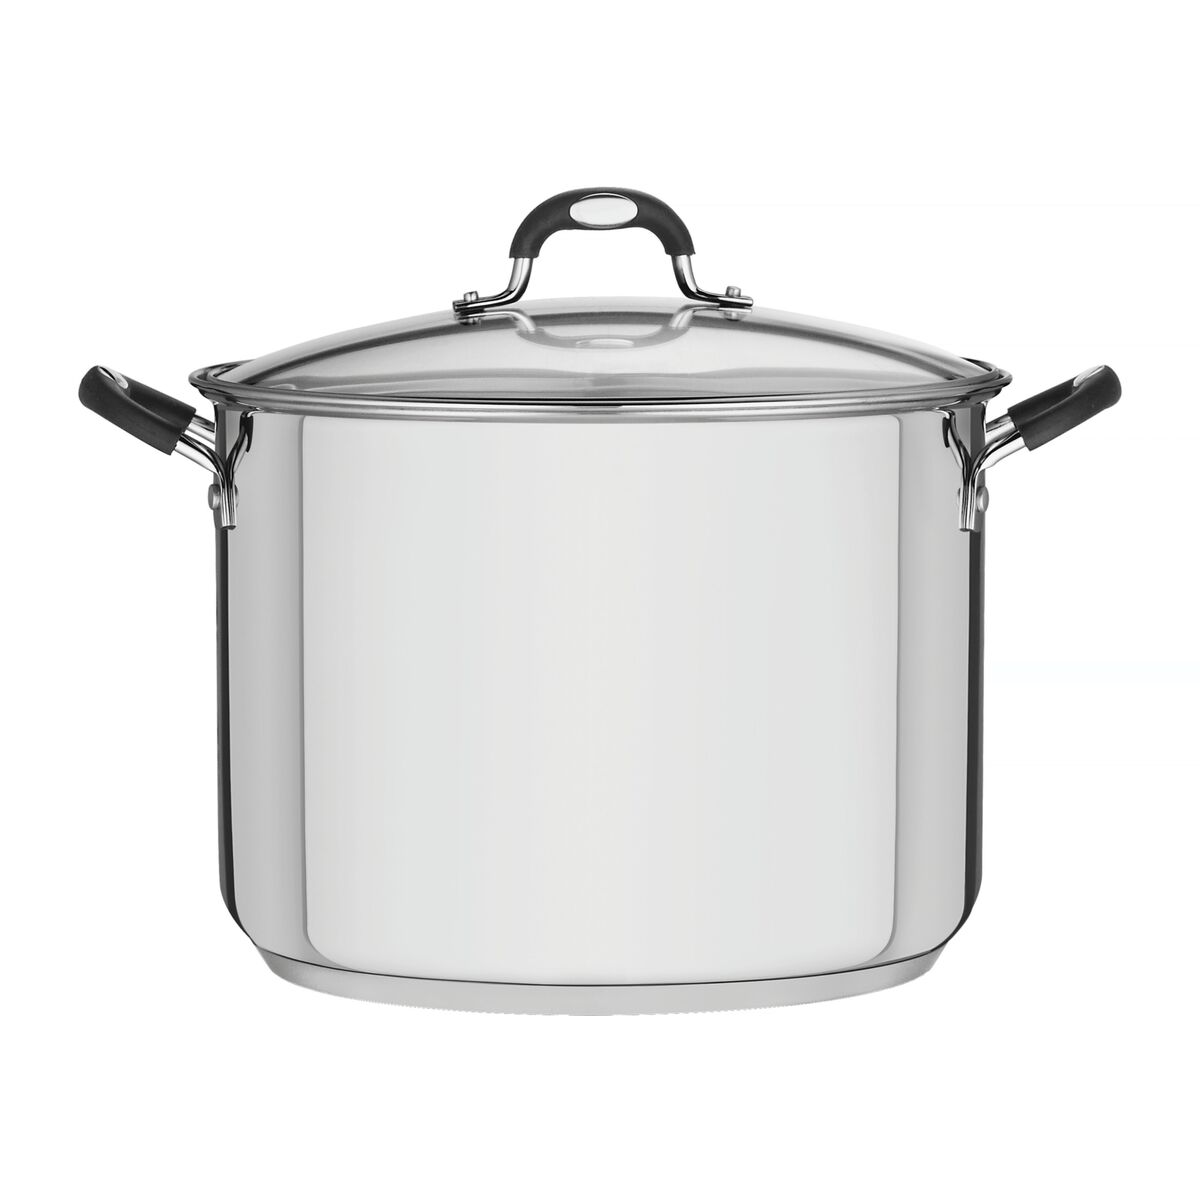 Tramontina Solar Silicone stainless steel stock pot with tri-ply base and glass lid, 30 cm and 15.4 L